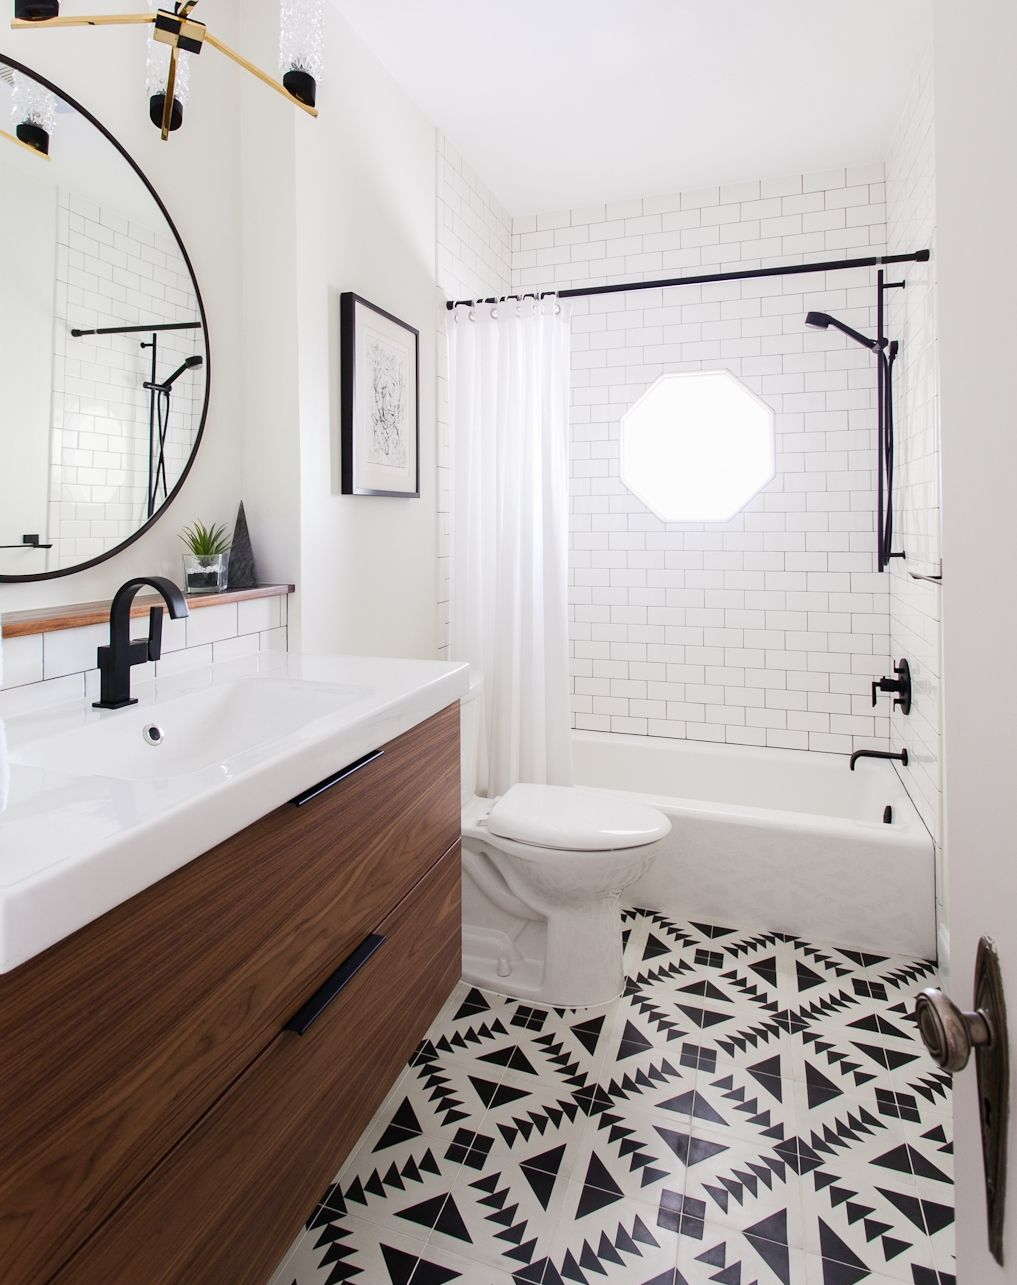 Black white bathroom pattern tile walnut vanity erin williamson walnut bathroom vanity black fixtures round mirror black and white patterned tile floor dailygadgetfo Images